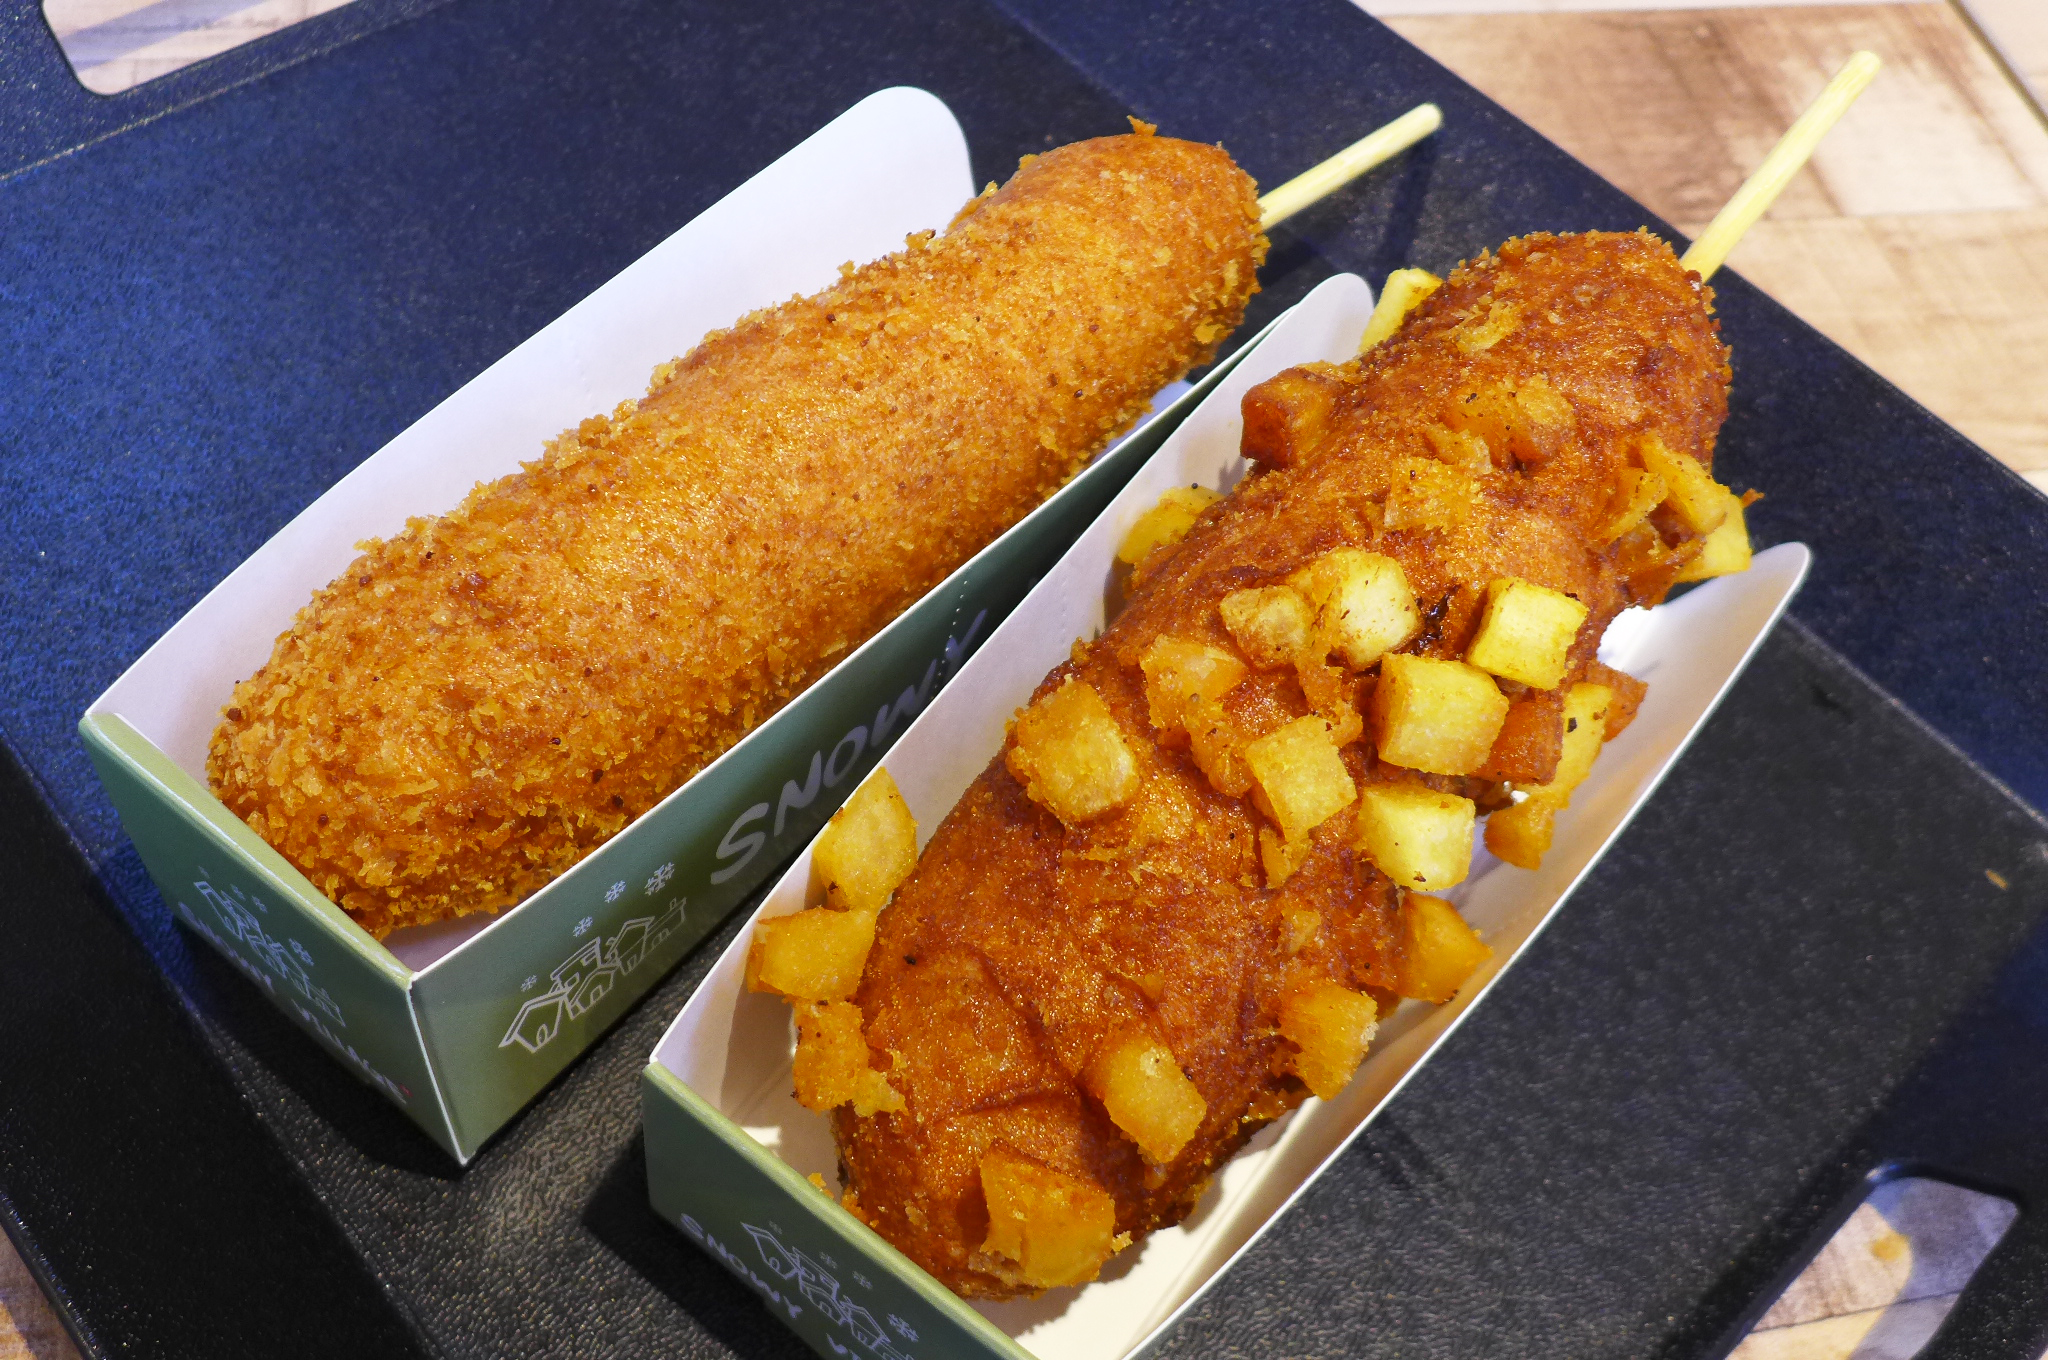 Two corn dogs, sticks protruding, one with potato cubes on the outside, the other without.